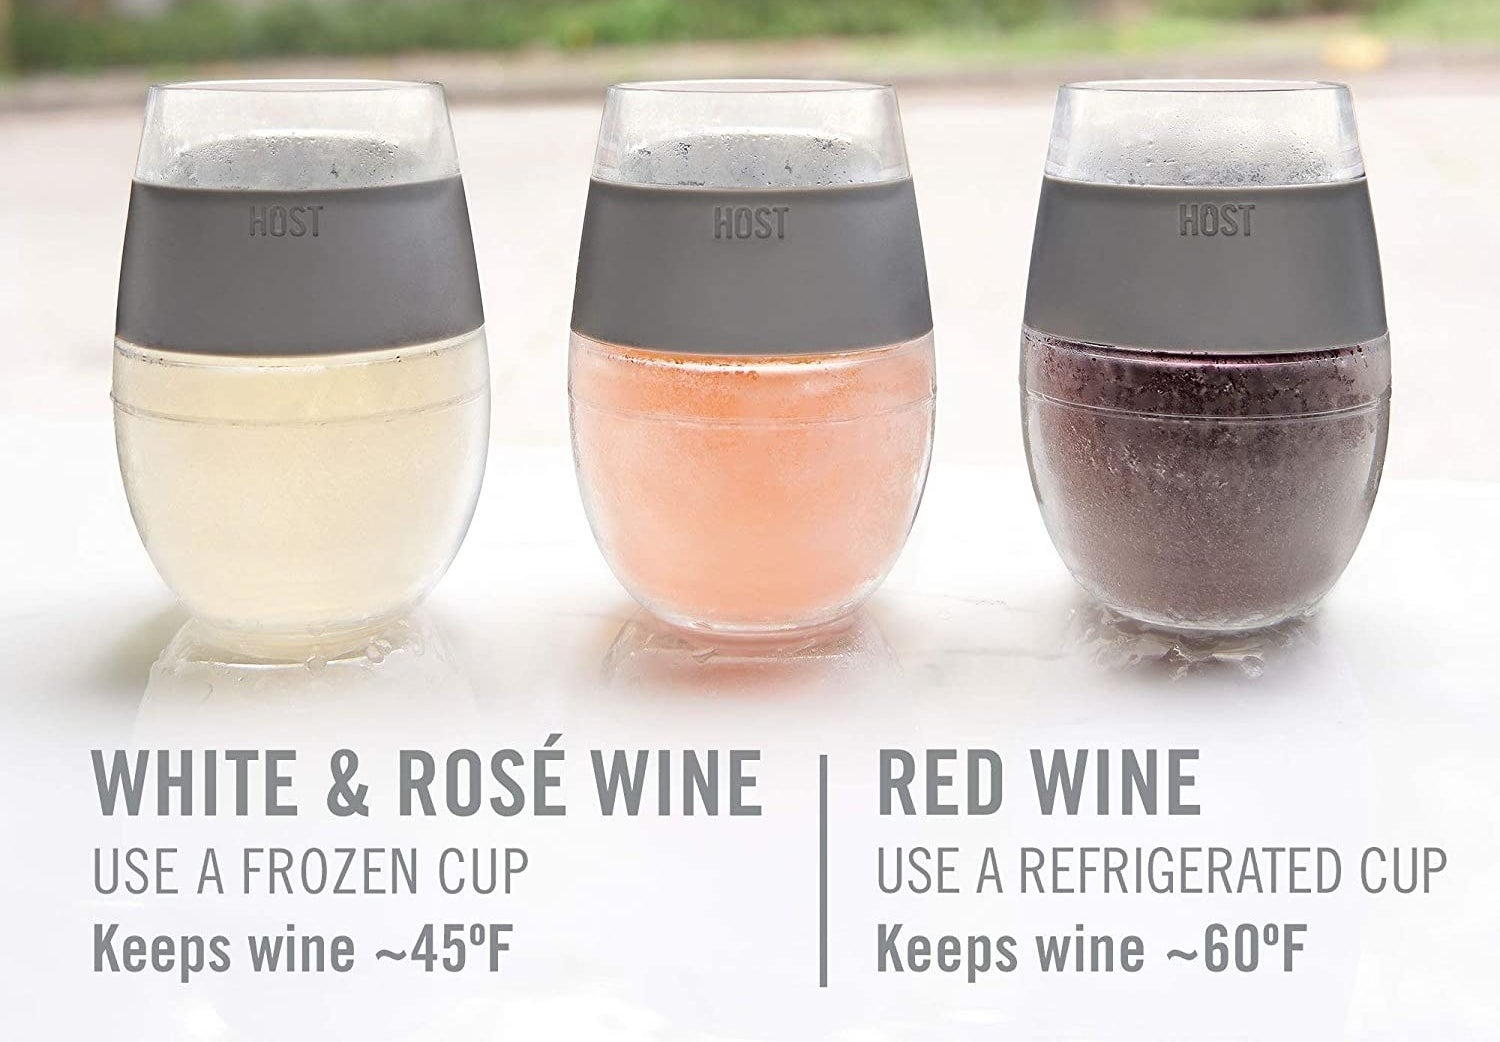 Three frosty glasses have white rosé and red wine in them